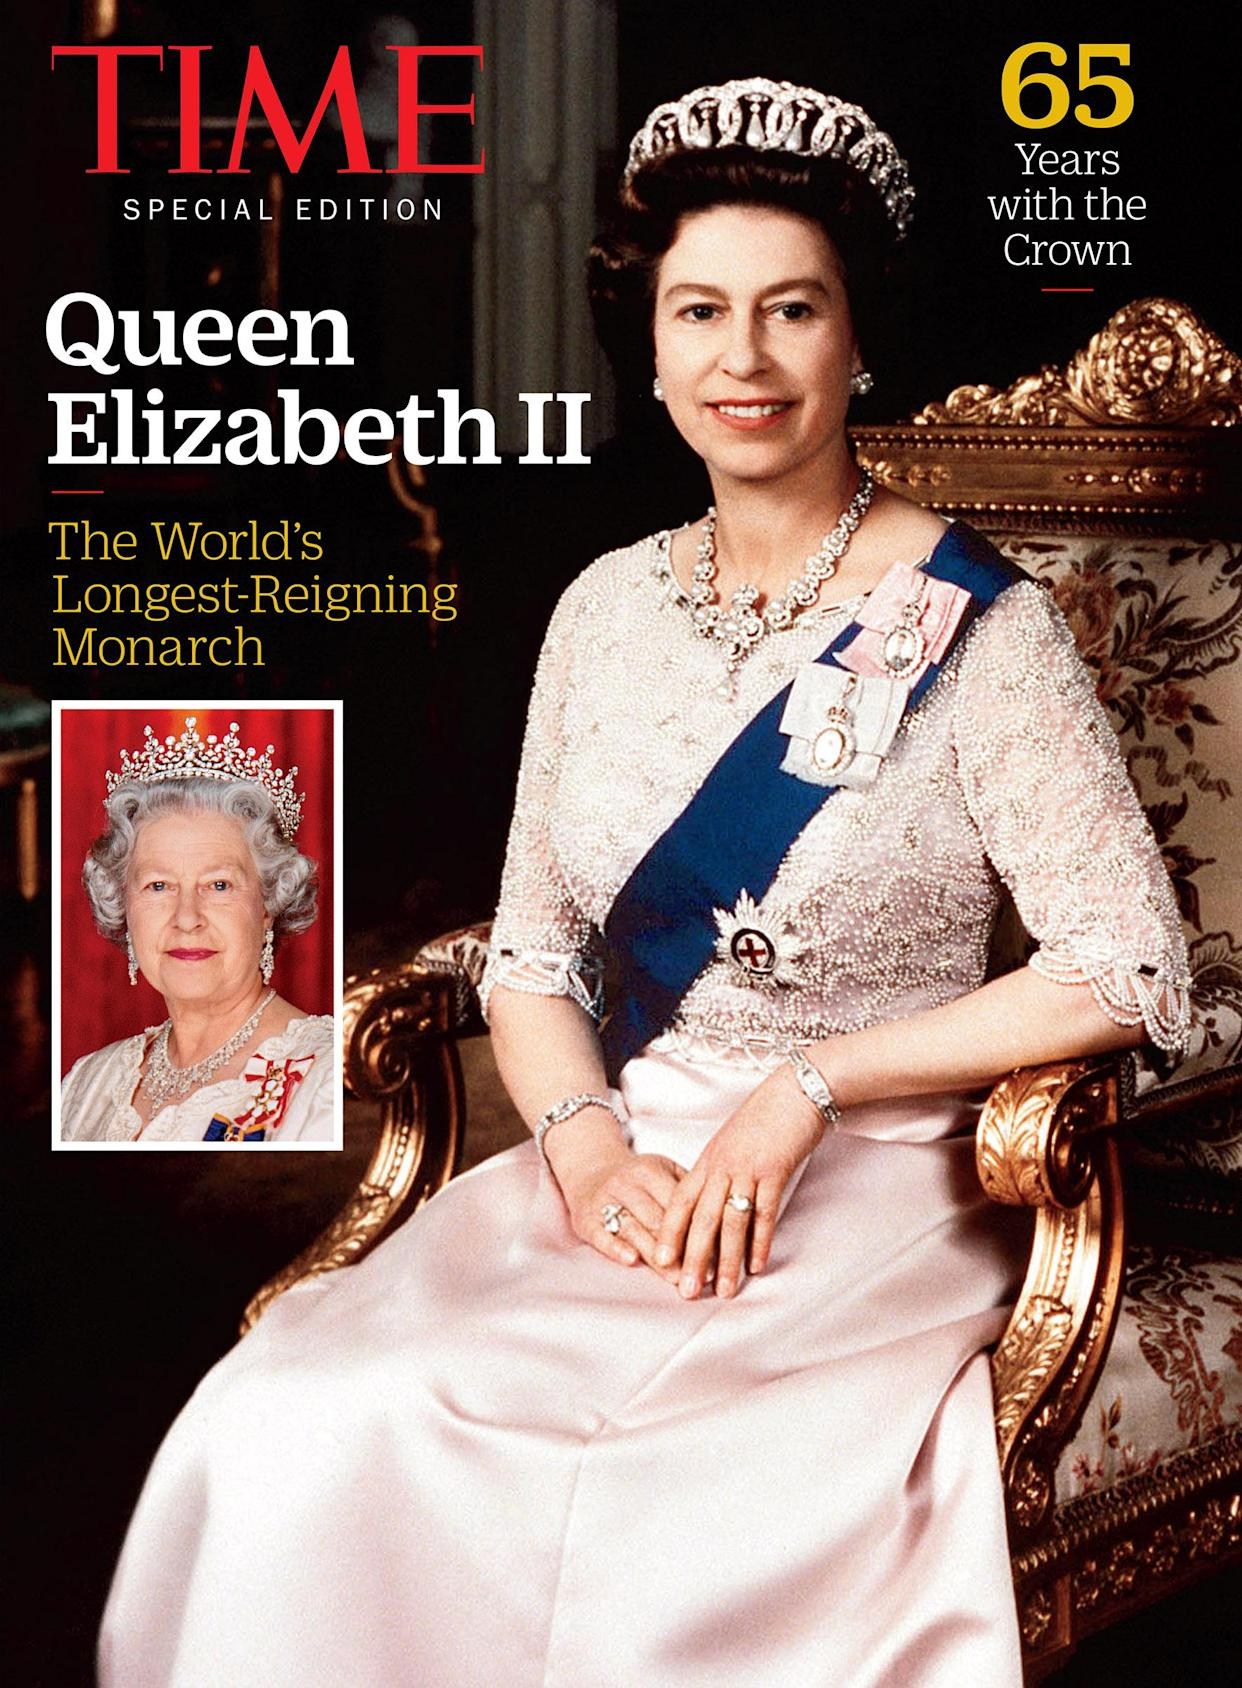 TIME Special Edition Cover of Queen Elizabeth II